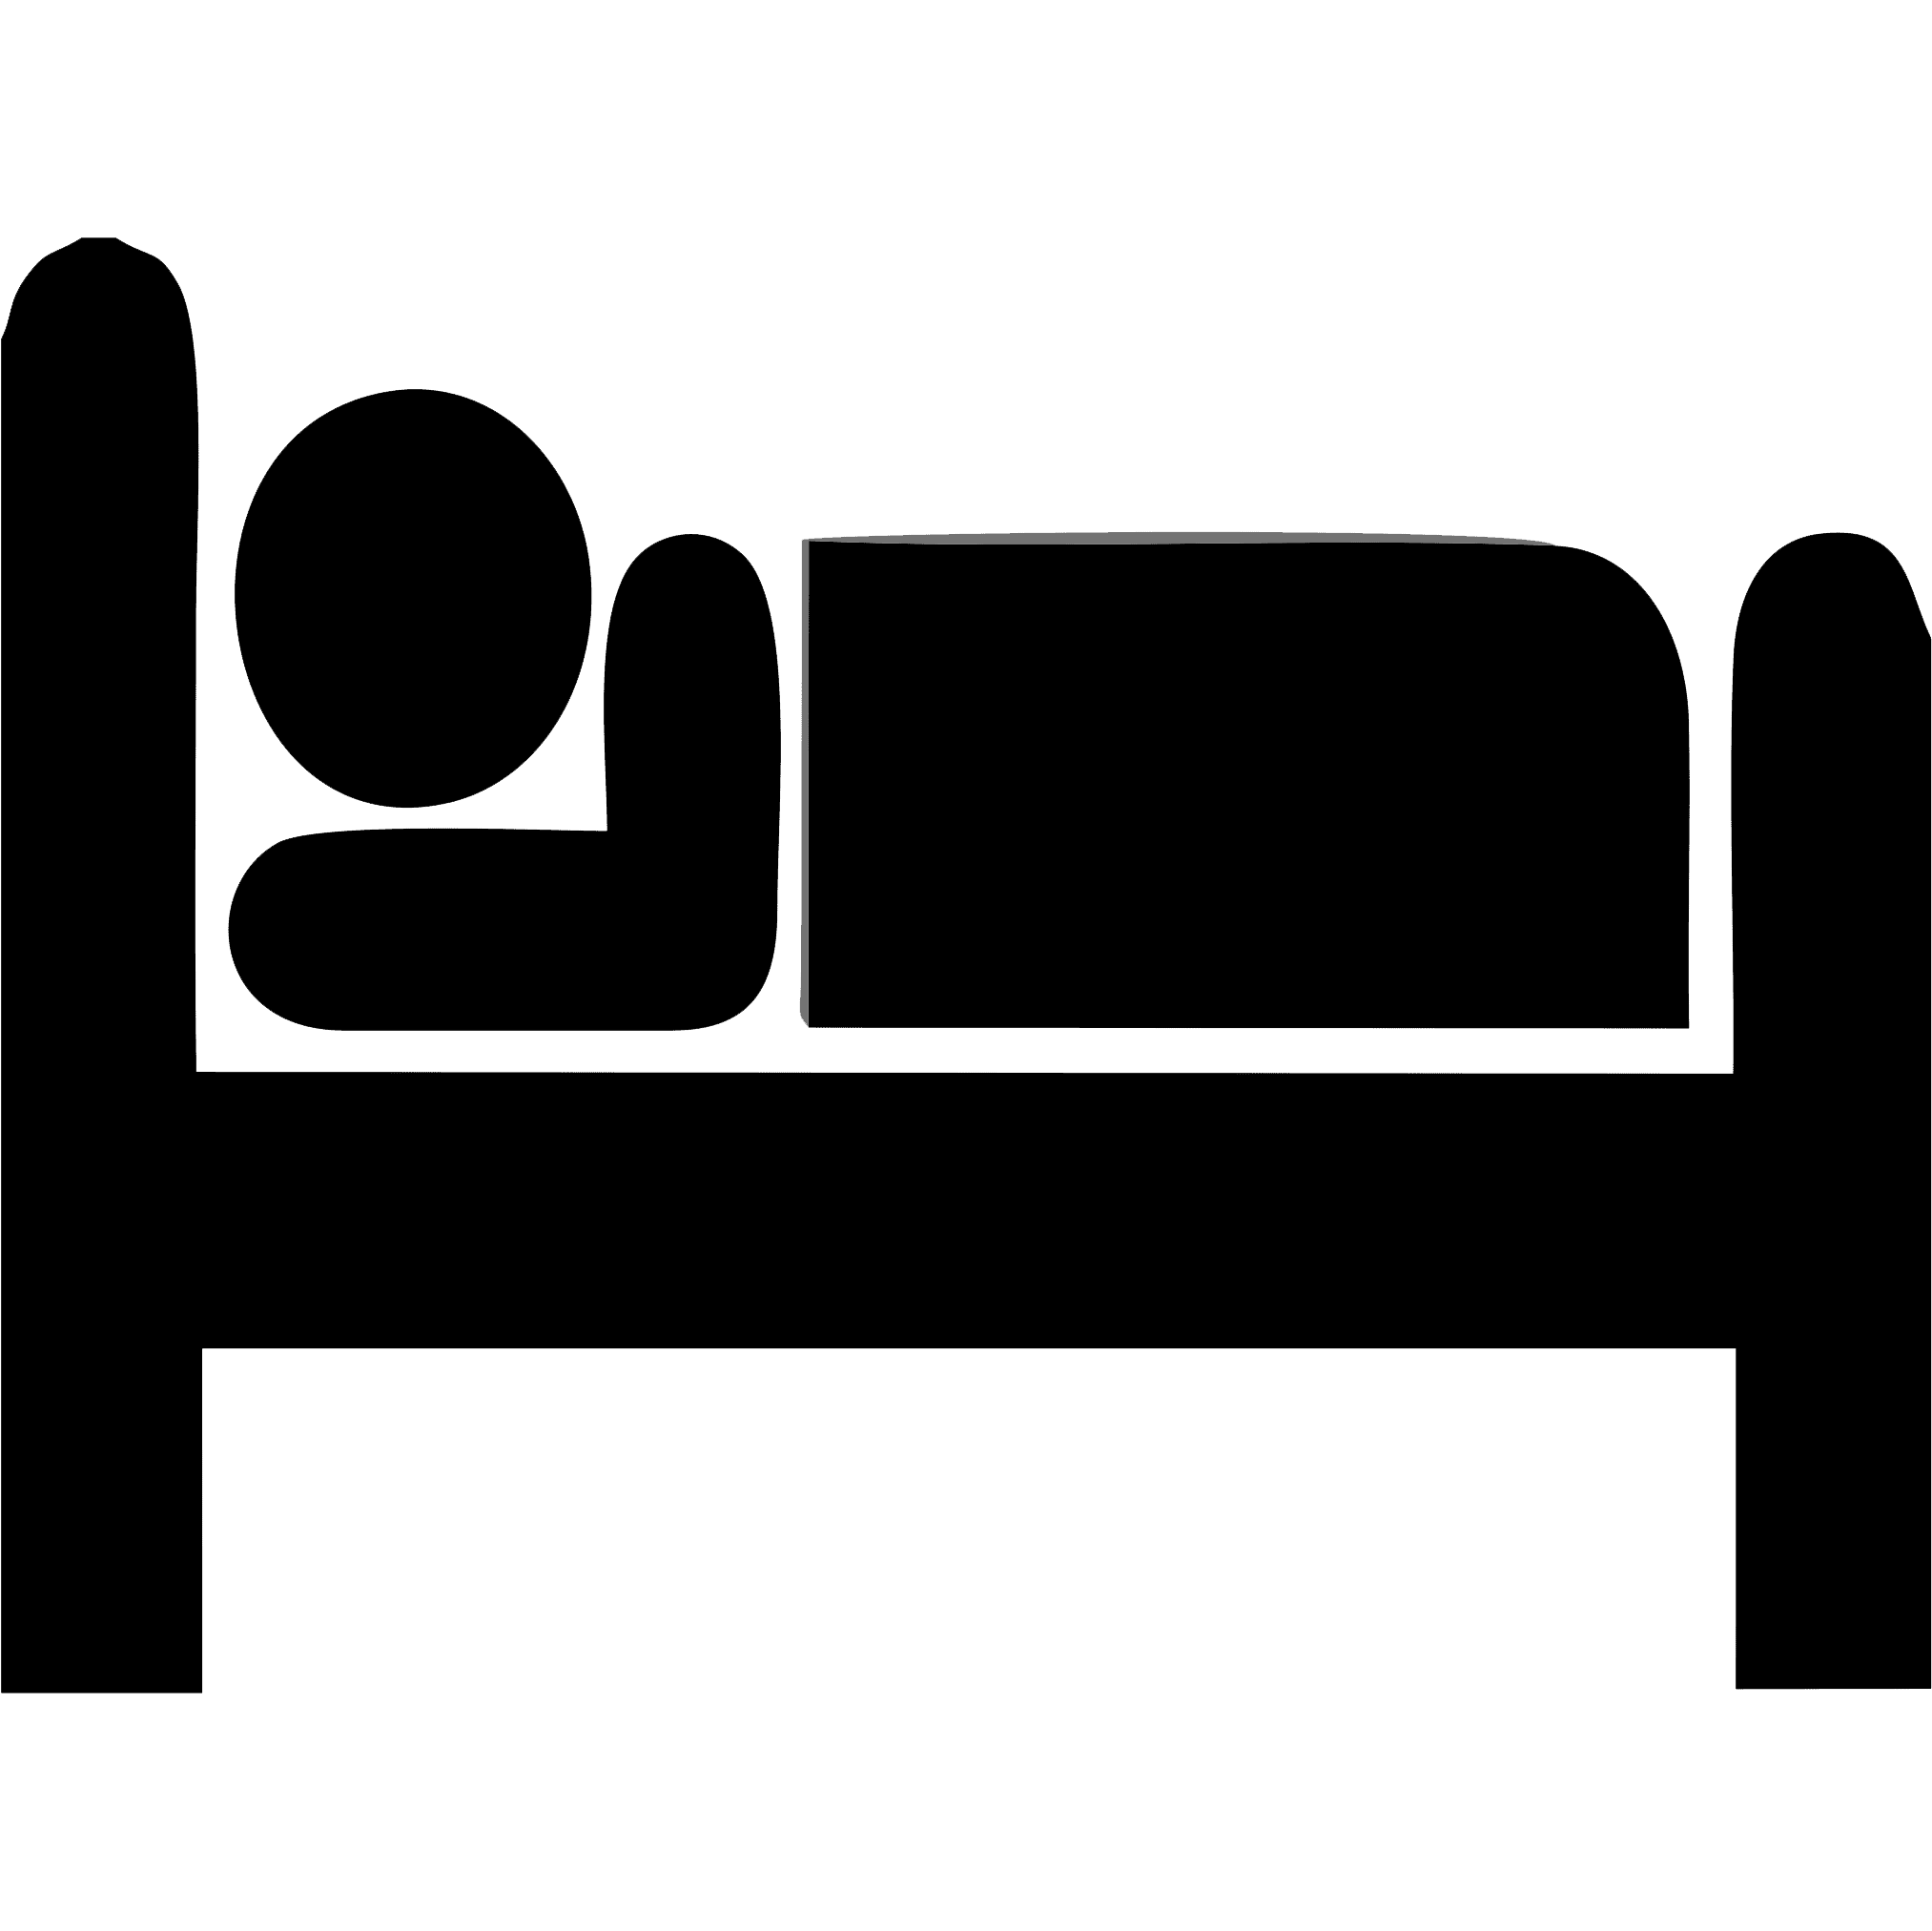 kisspng-bedroom-pictogram-sleep-celula-5b51ae12bb8908.0169897615320796347682